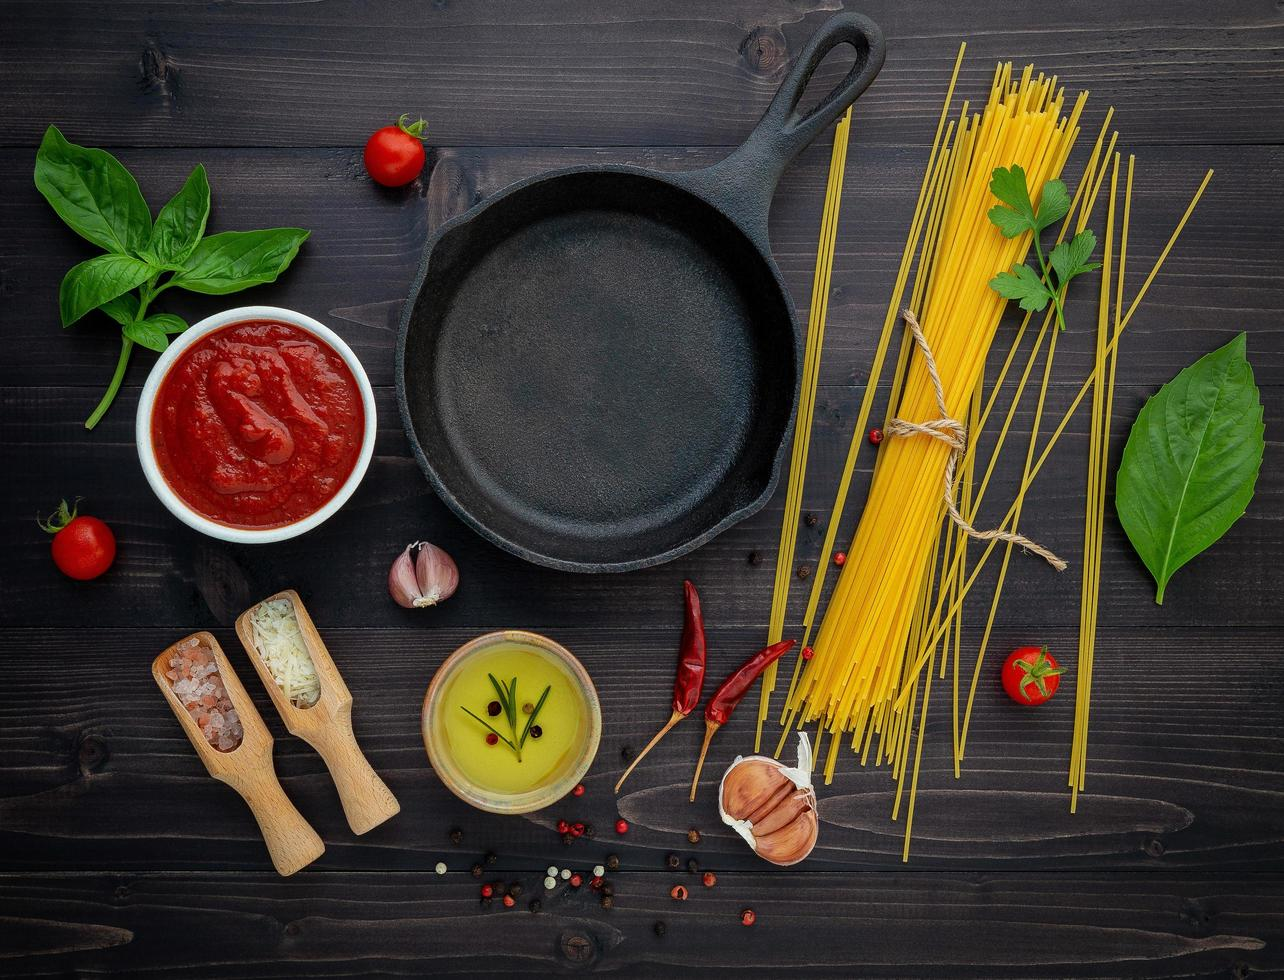 Cast iron skill and spaghetti ingredients photo